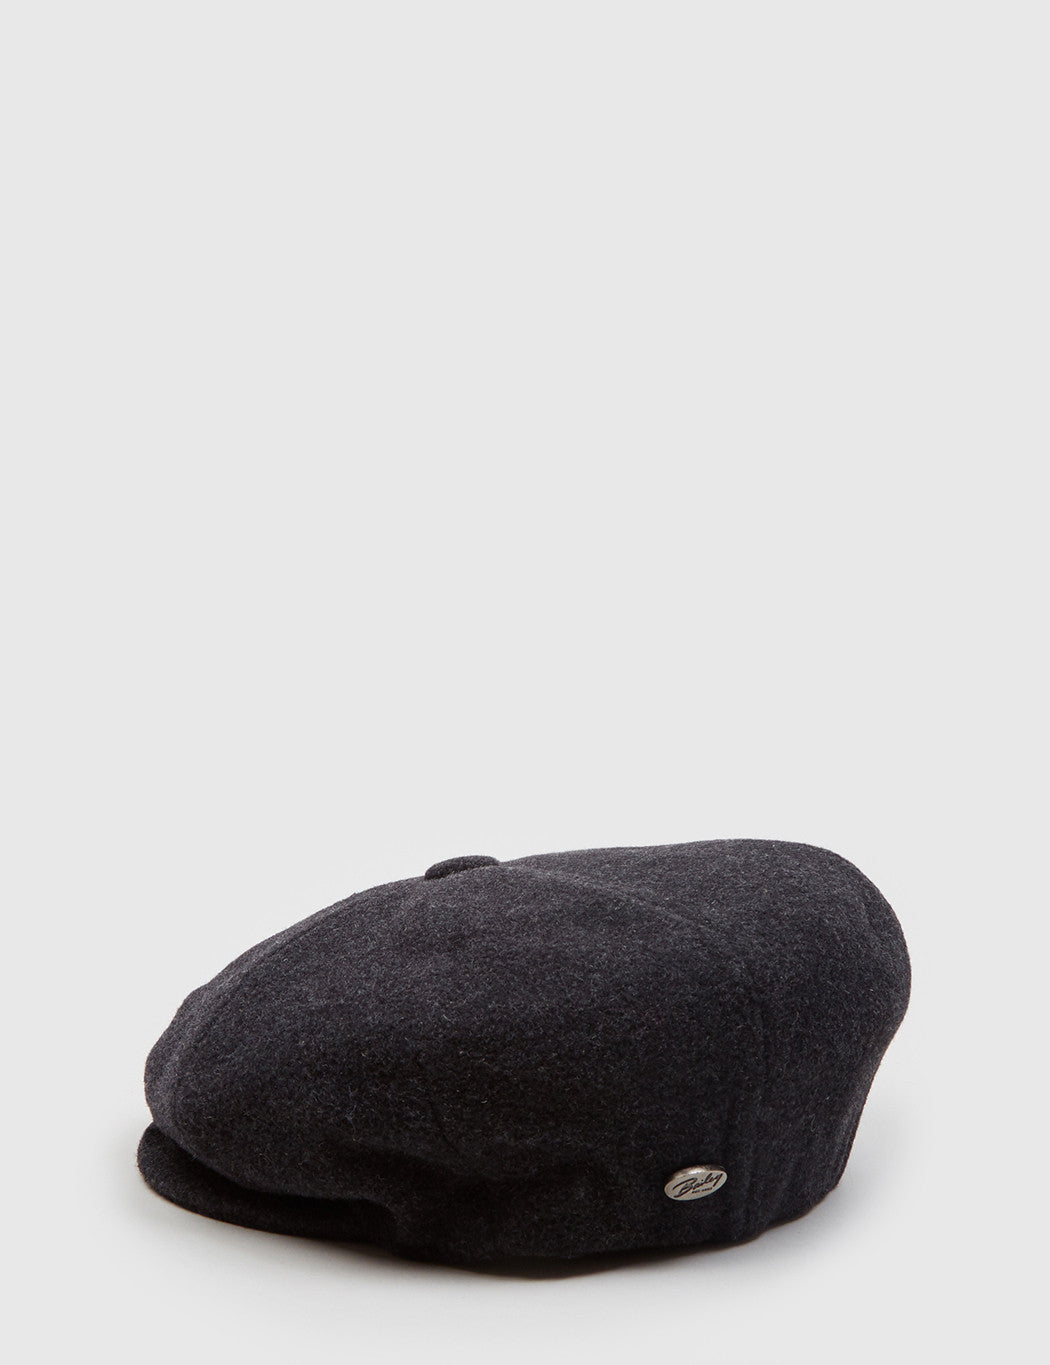 Bailey Galvin Wool Newsboy Cap - Grey